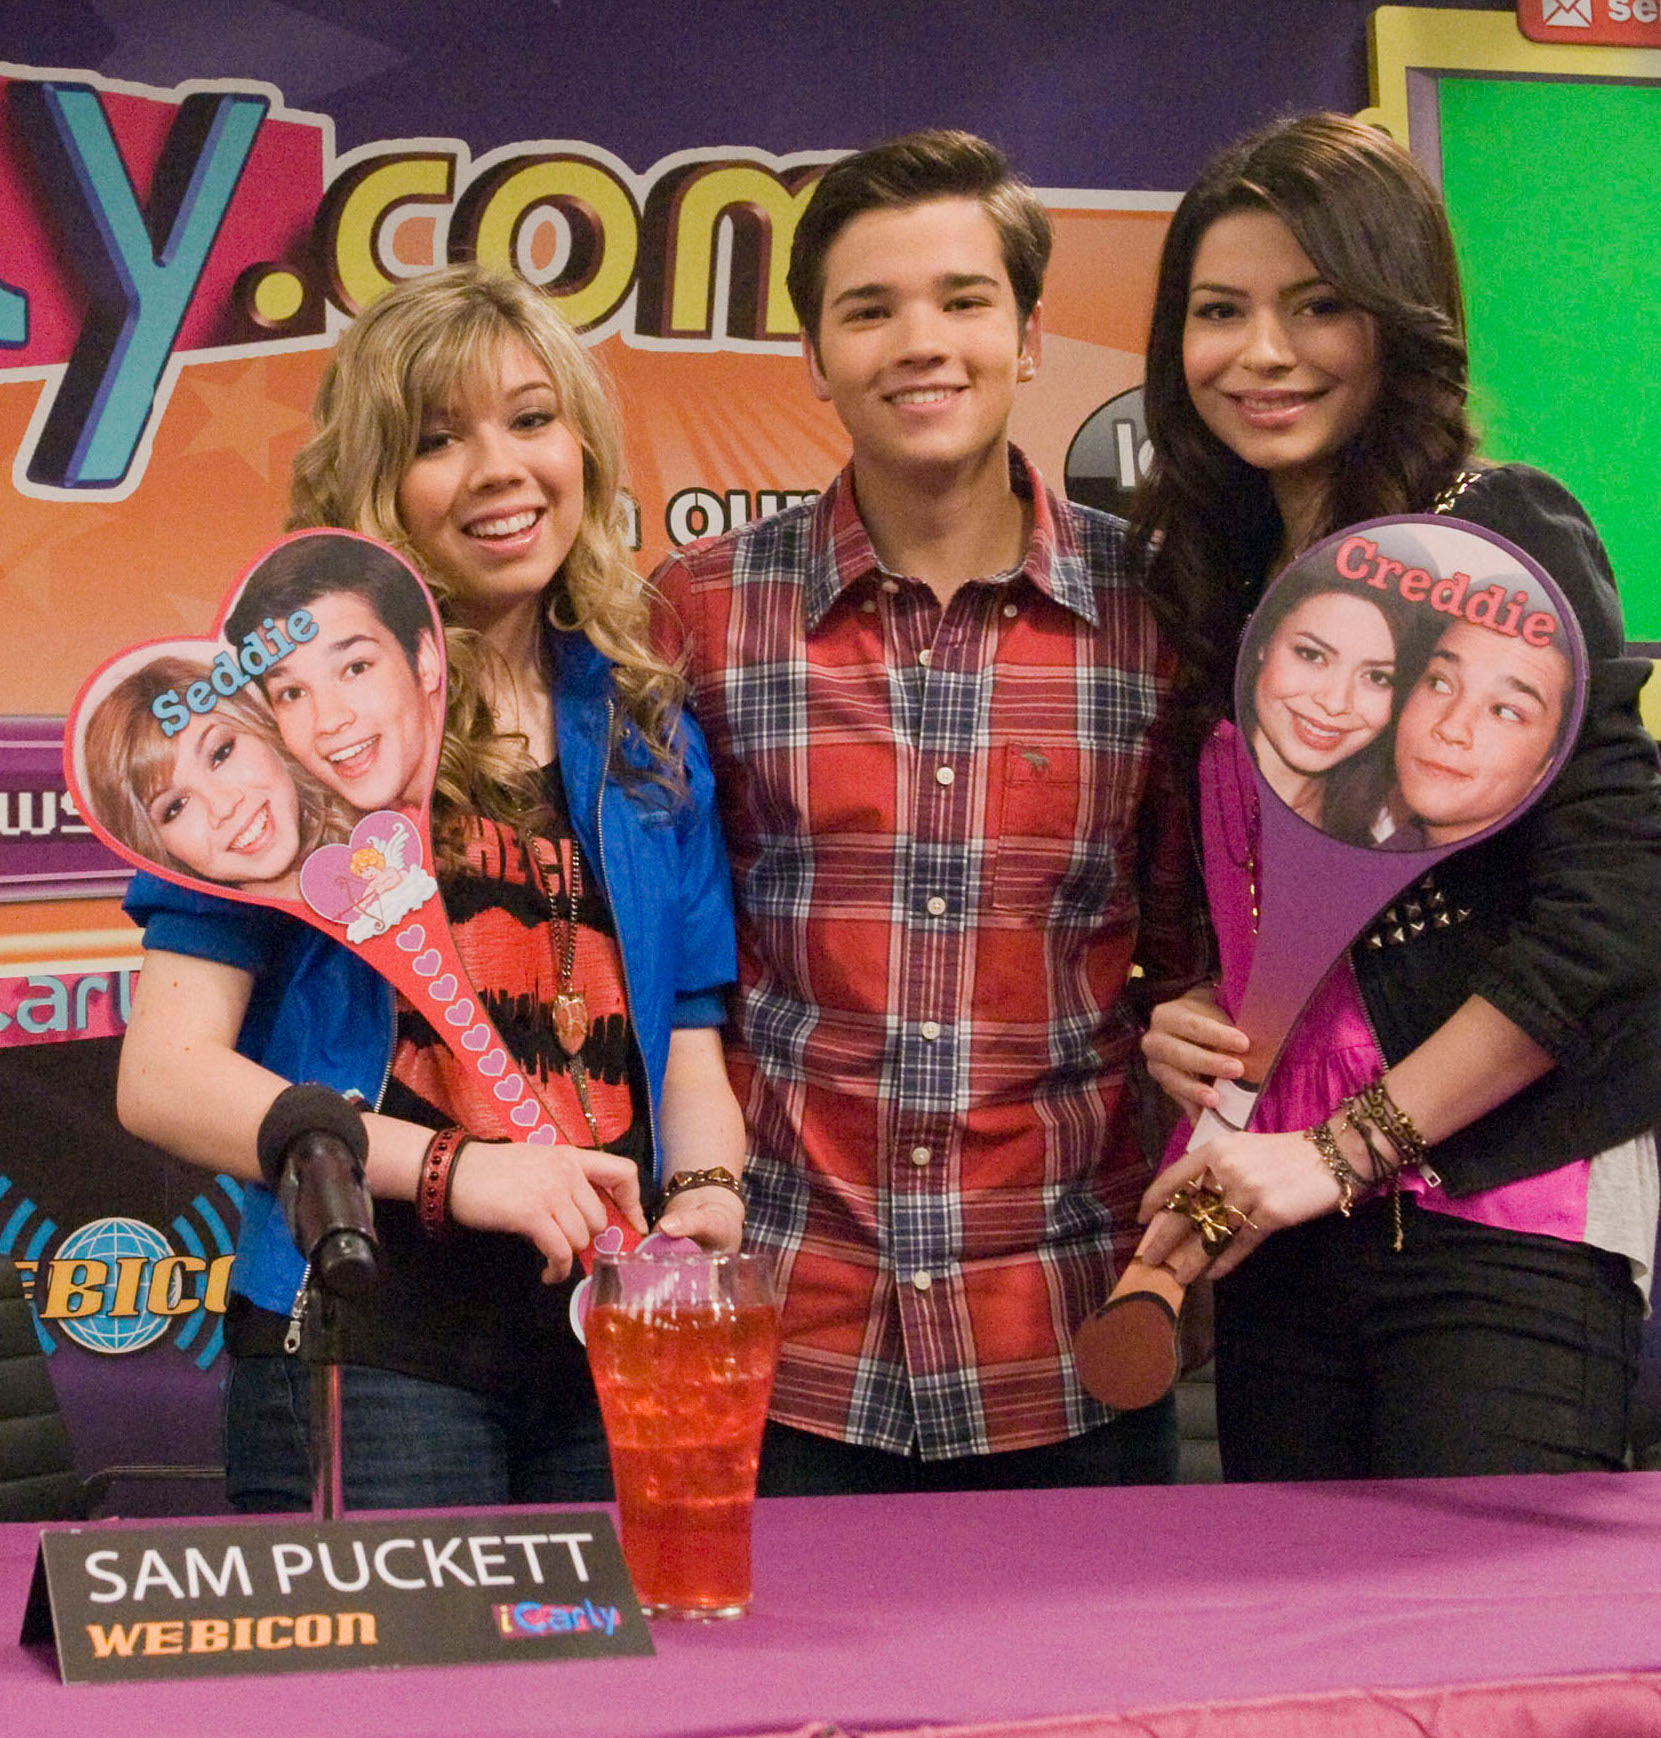 La Guerra De Los Fans Icarly Wiki Fandom Powered By Wikia